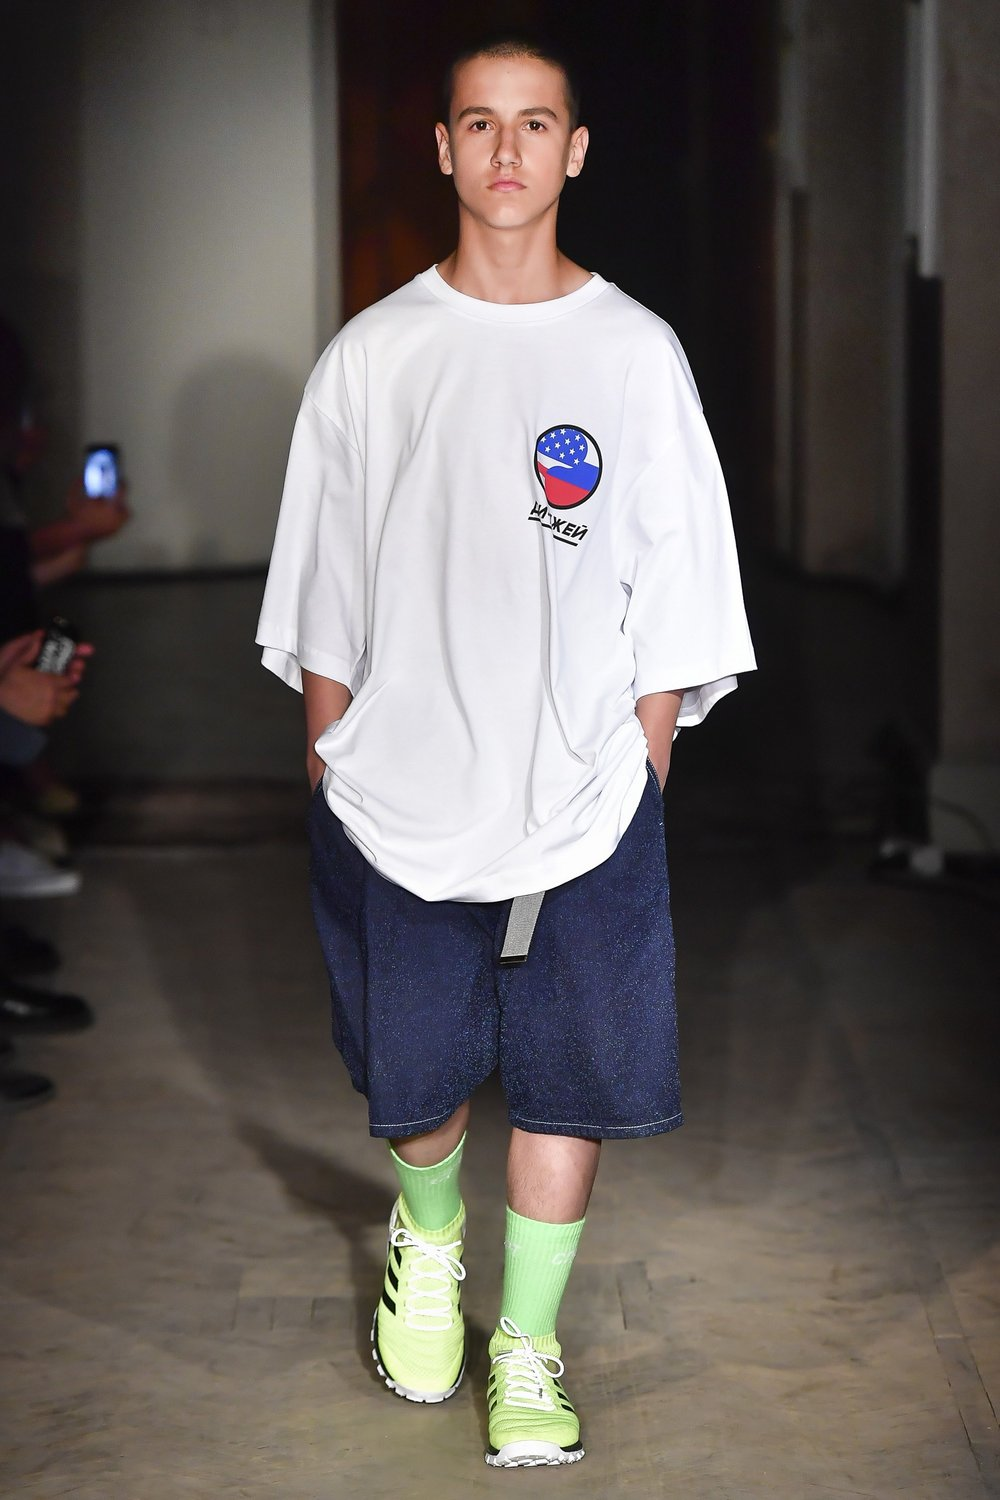 Gosha Rubchinskiy Spring/Summer 2018  returns for a third delivery at  Dover Street Market .  The collection features football inspired tops and shorts.